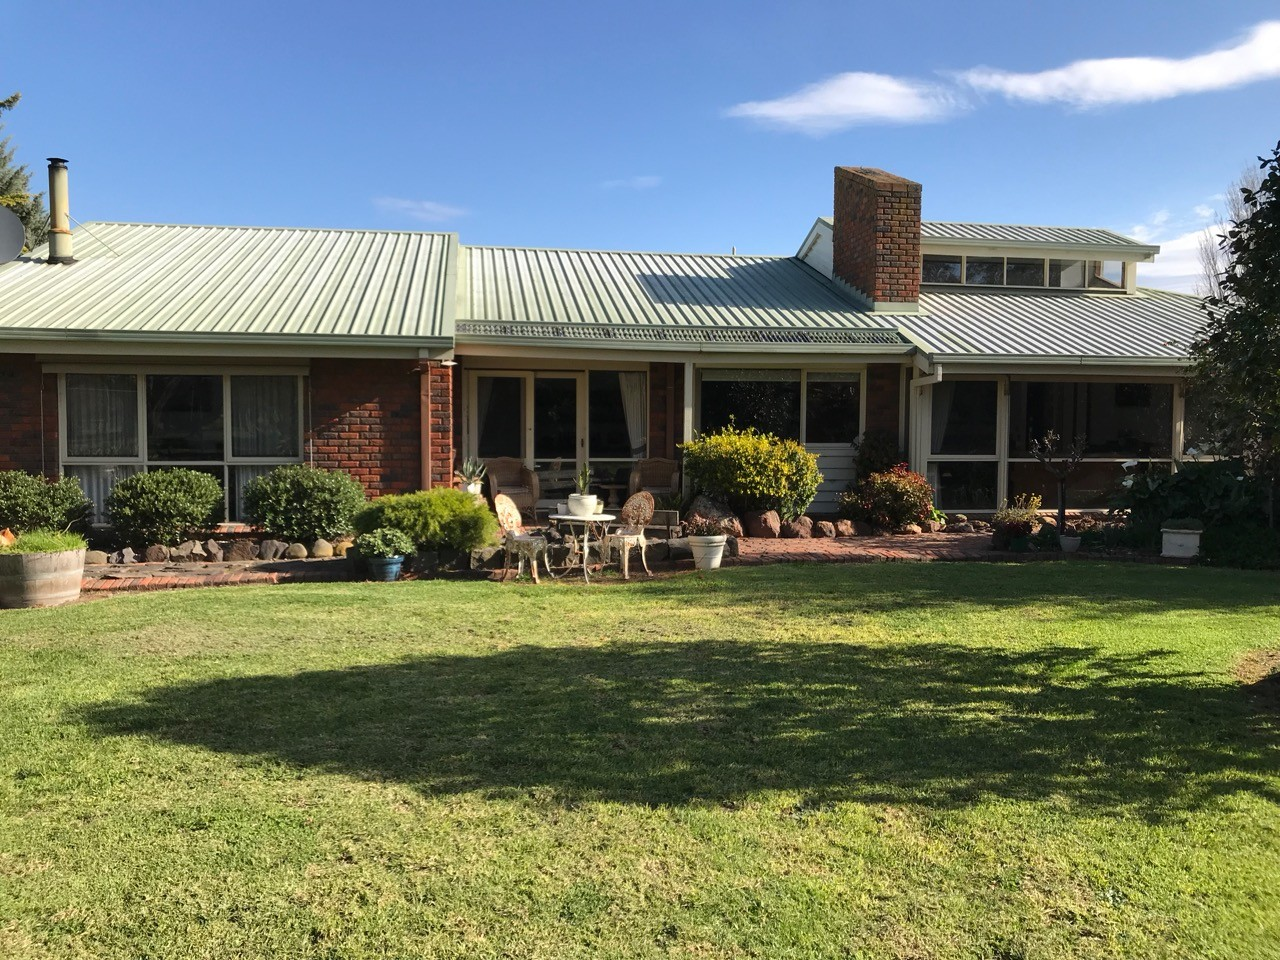 Property for sale 441 Calrossie-Won Wron Road, Won Wron VIC 3971